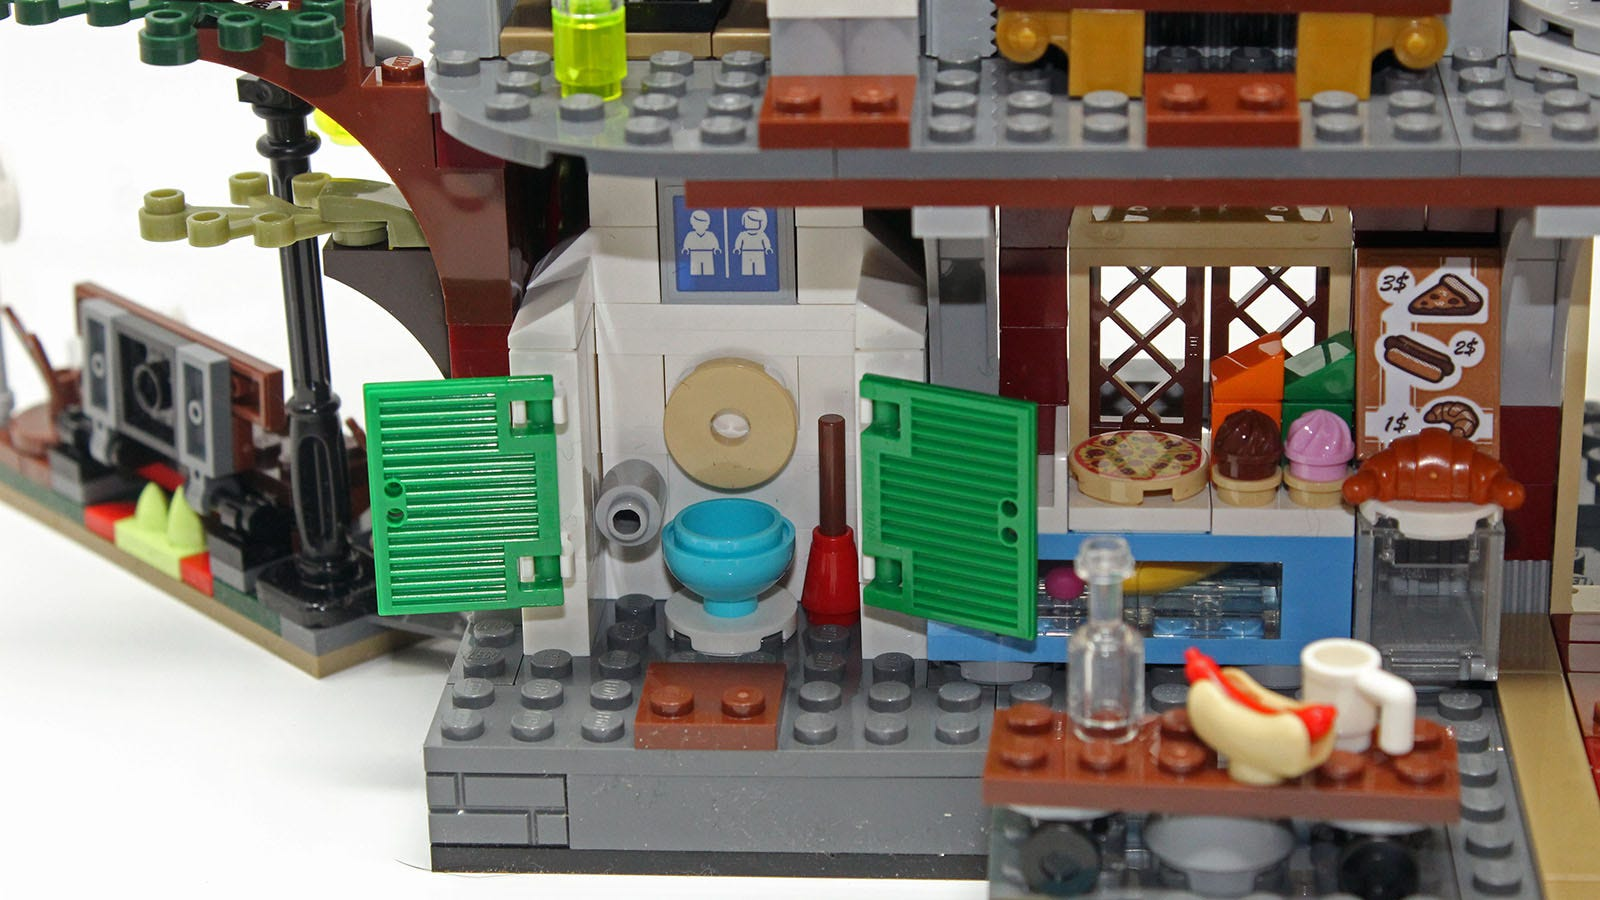 A tiny LEGO bathroom, including a plunger and toilet paper.